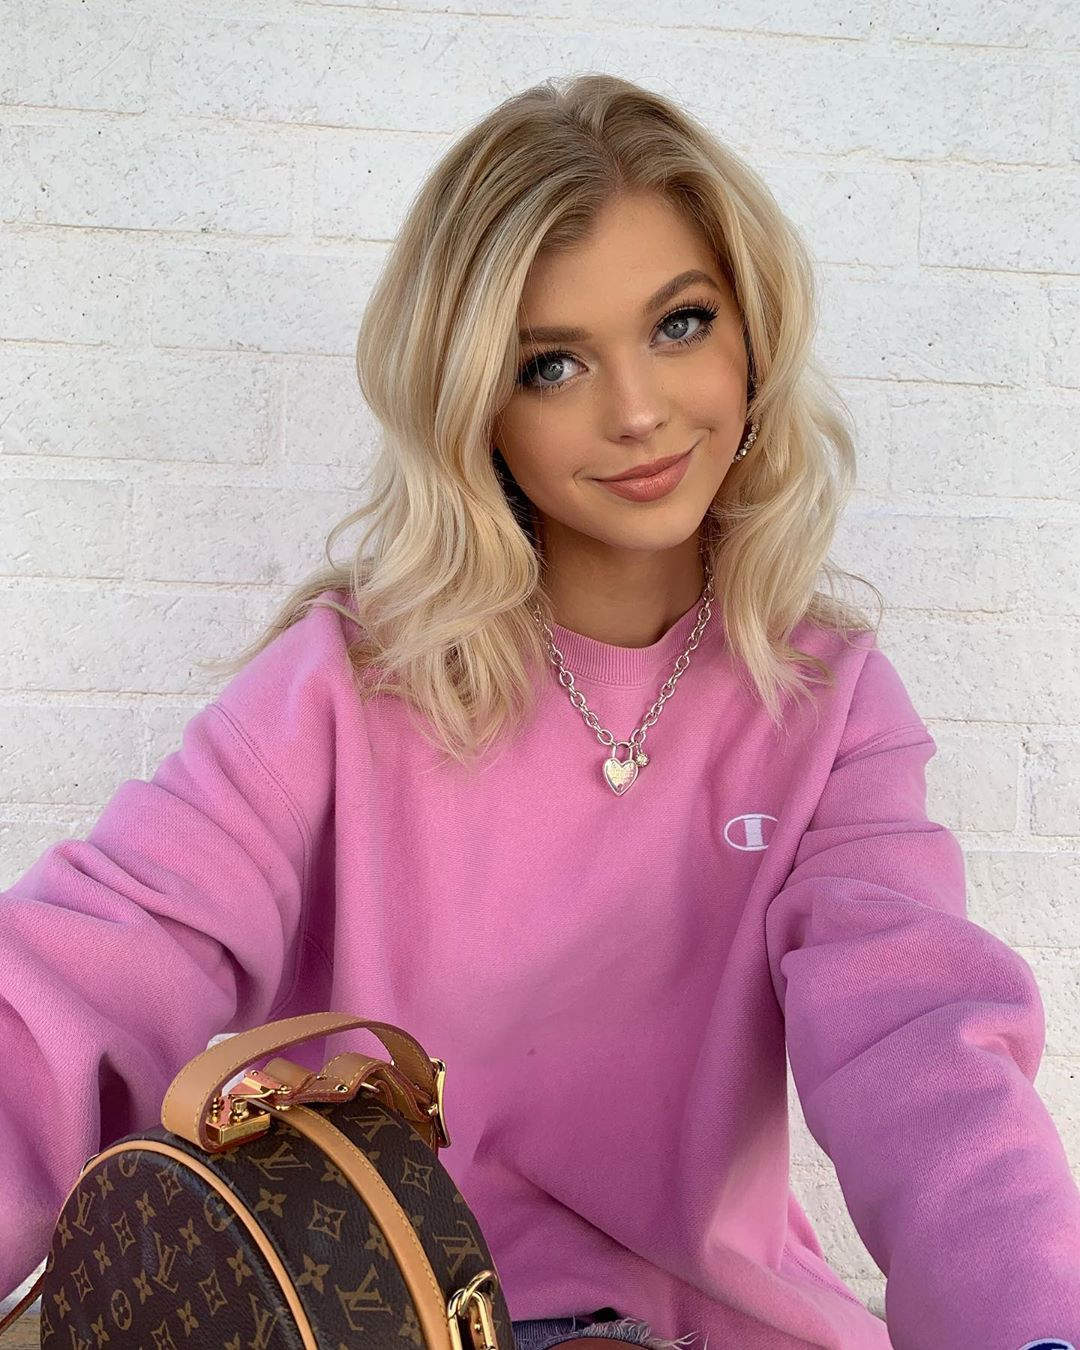 Loren-Gray-Wallpapers-Insta-Fit-Bio-2